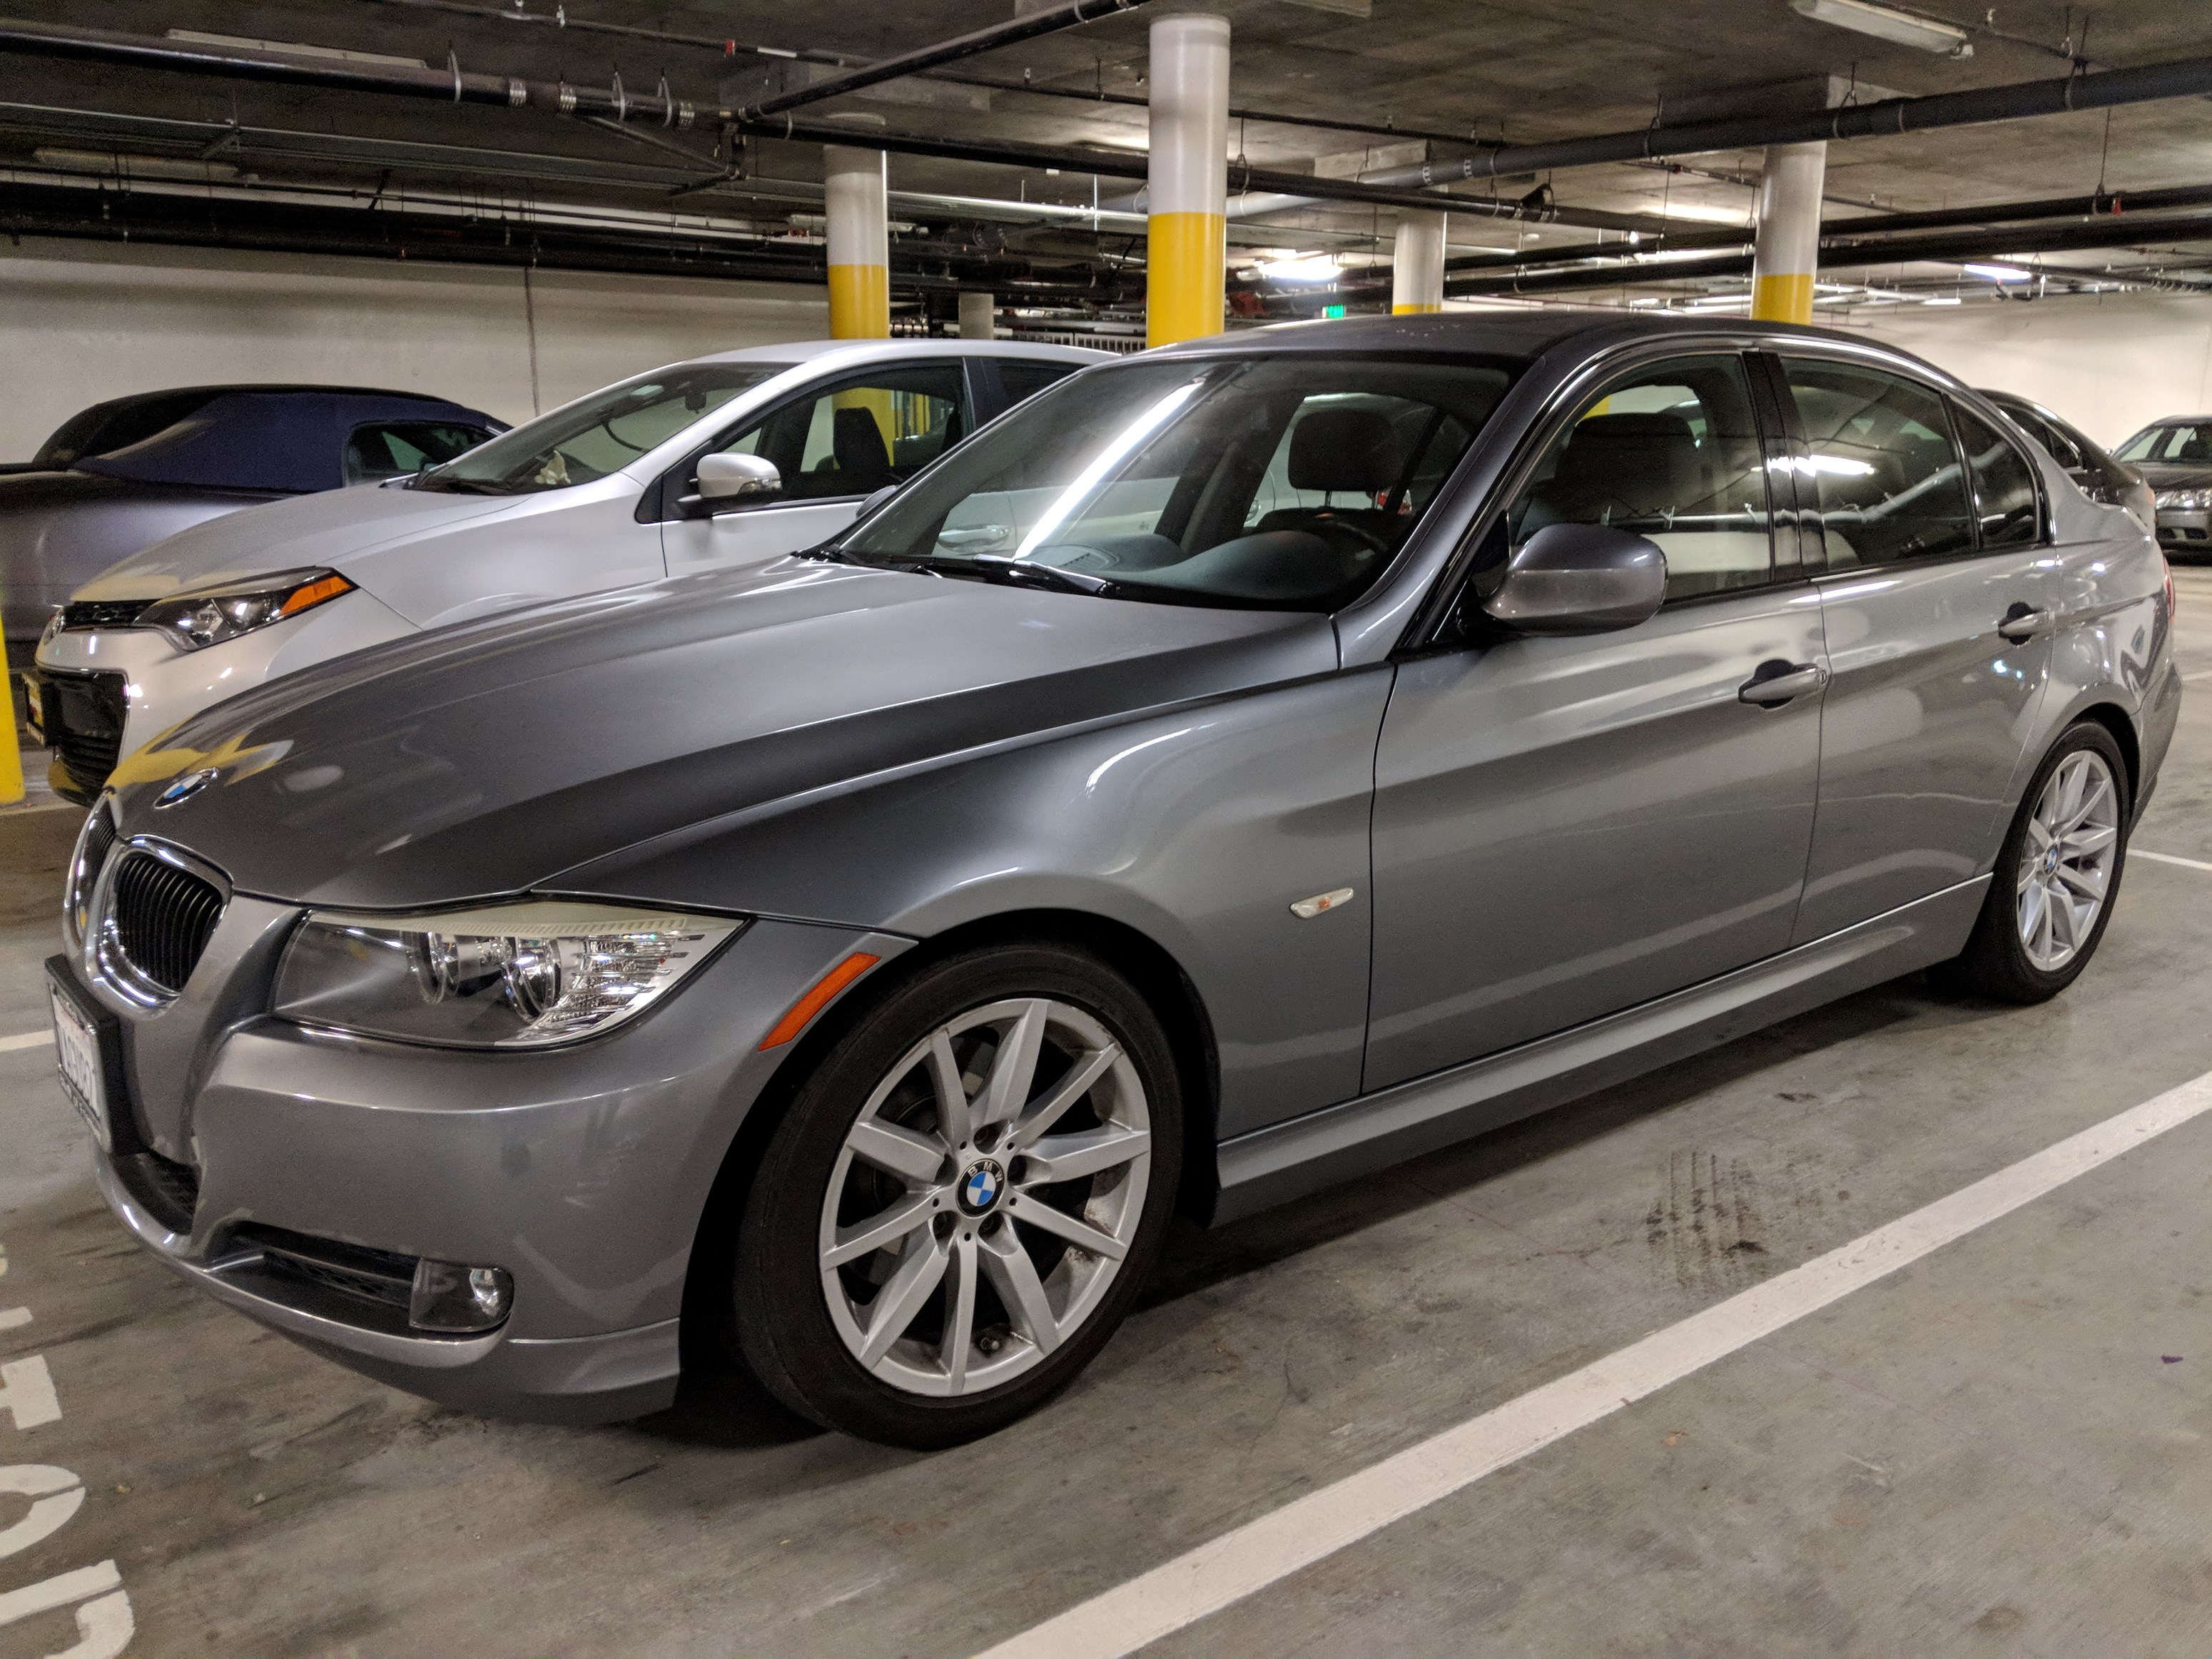 2010 BMW 328i Sedan Excellent Condition Fully Loaded Very Low